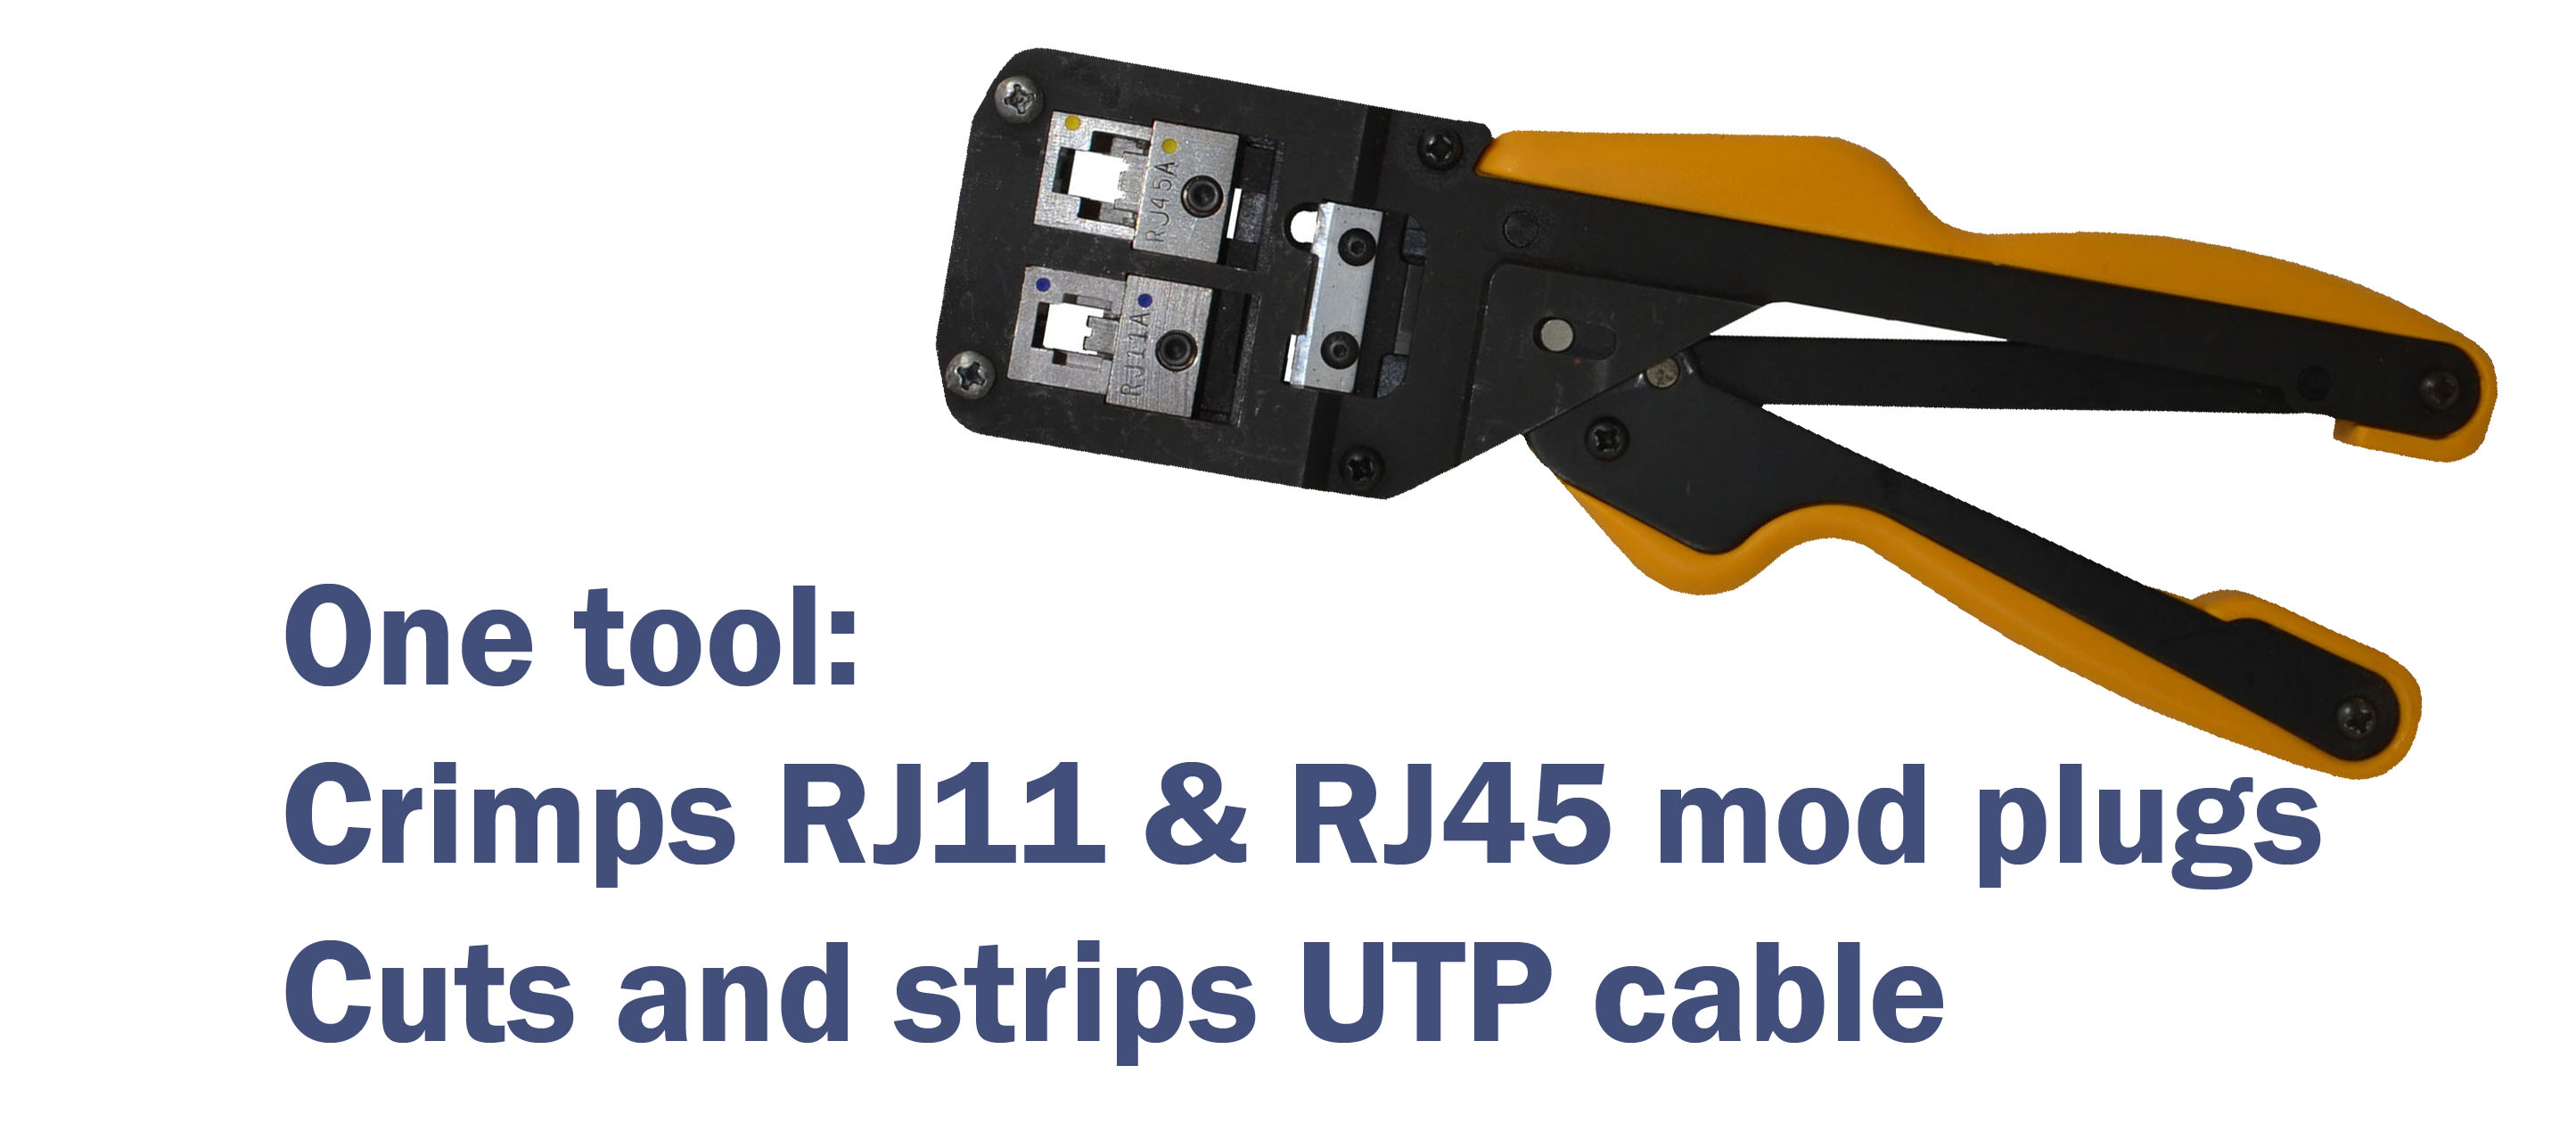 Also cuts and strips UTP cable